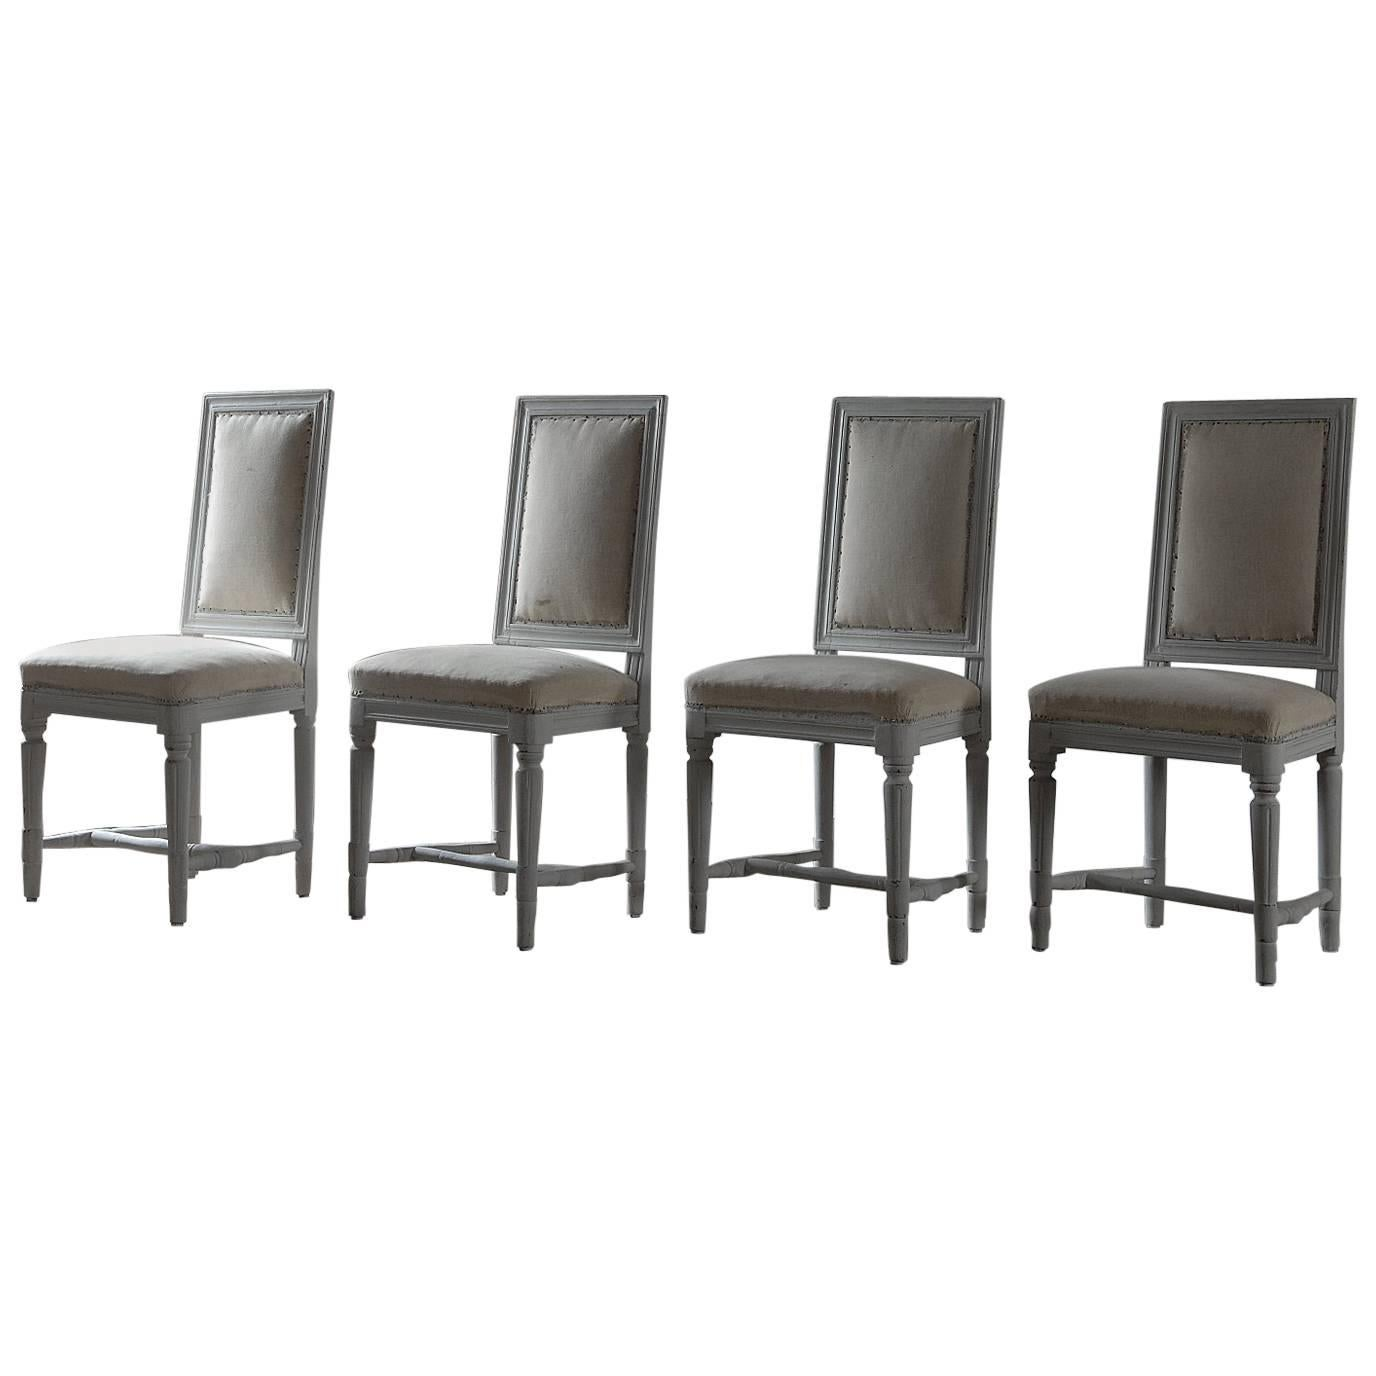 Exceptional Set Of Four Period Gustavian Dining Chairs For Sale Awesome Design